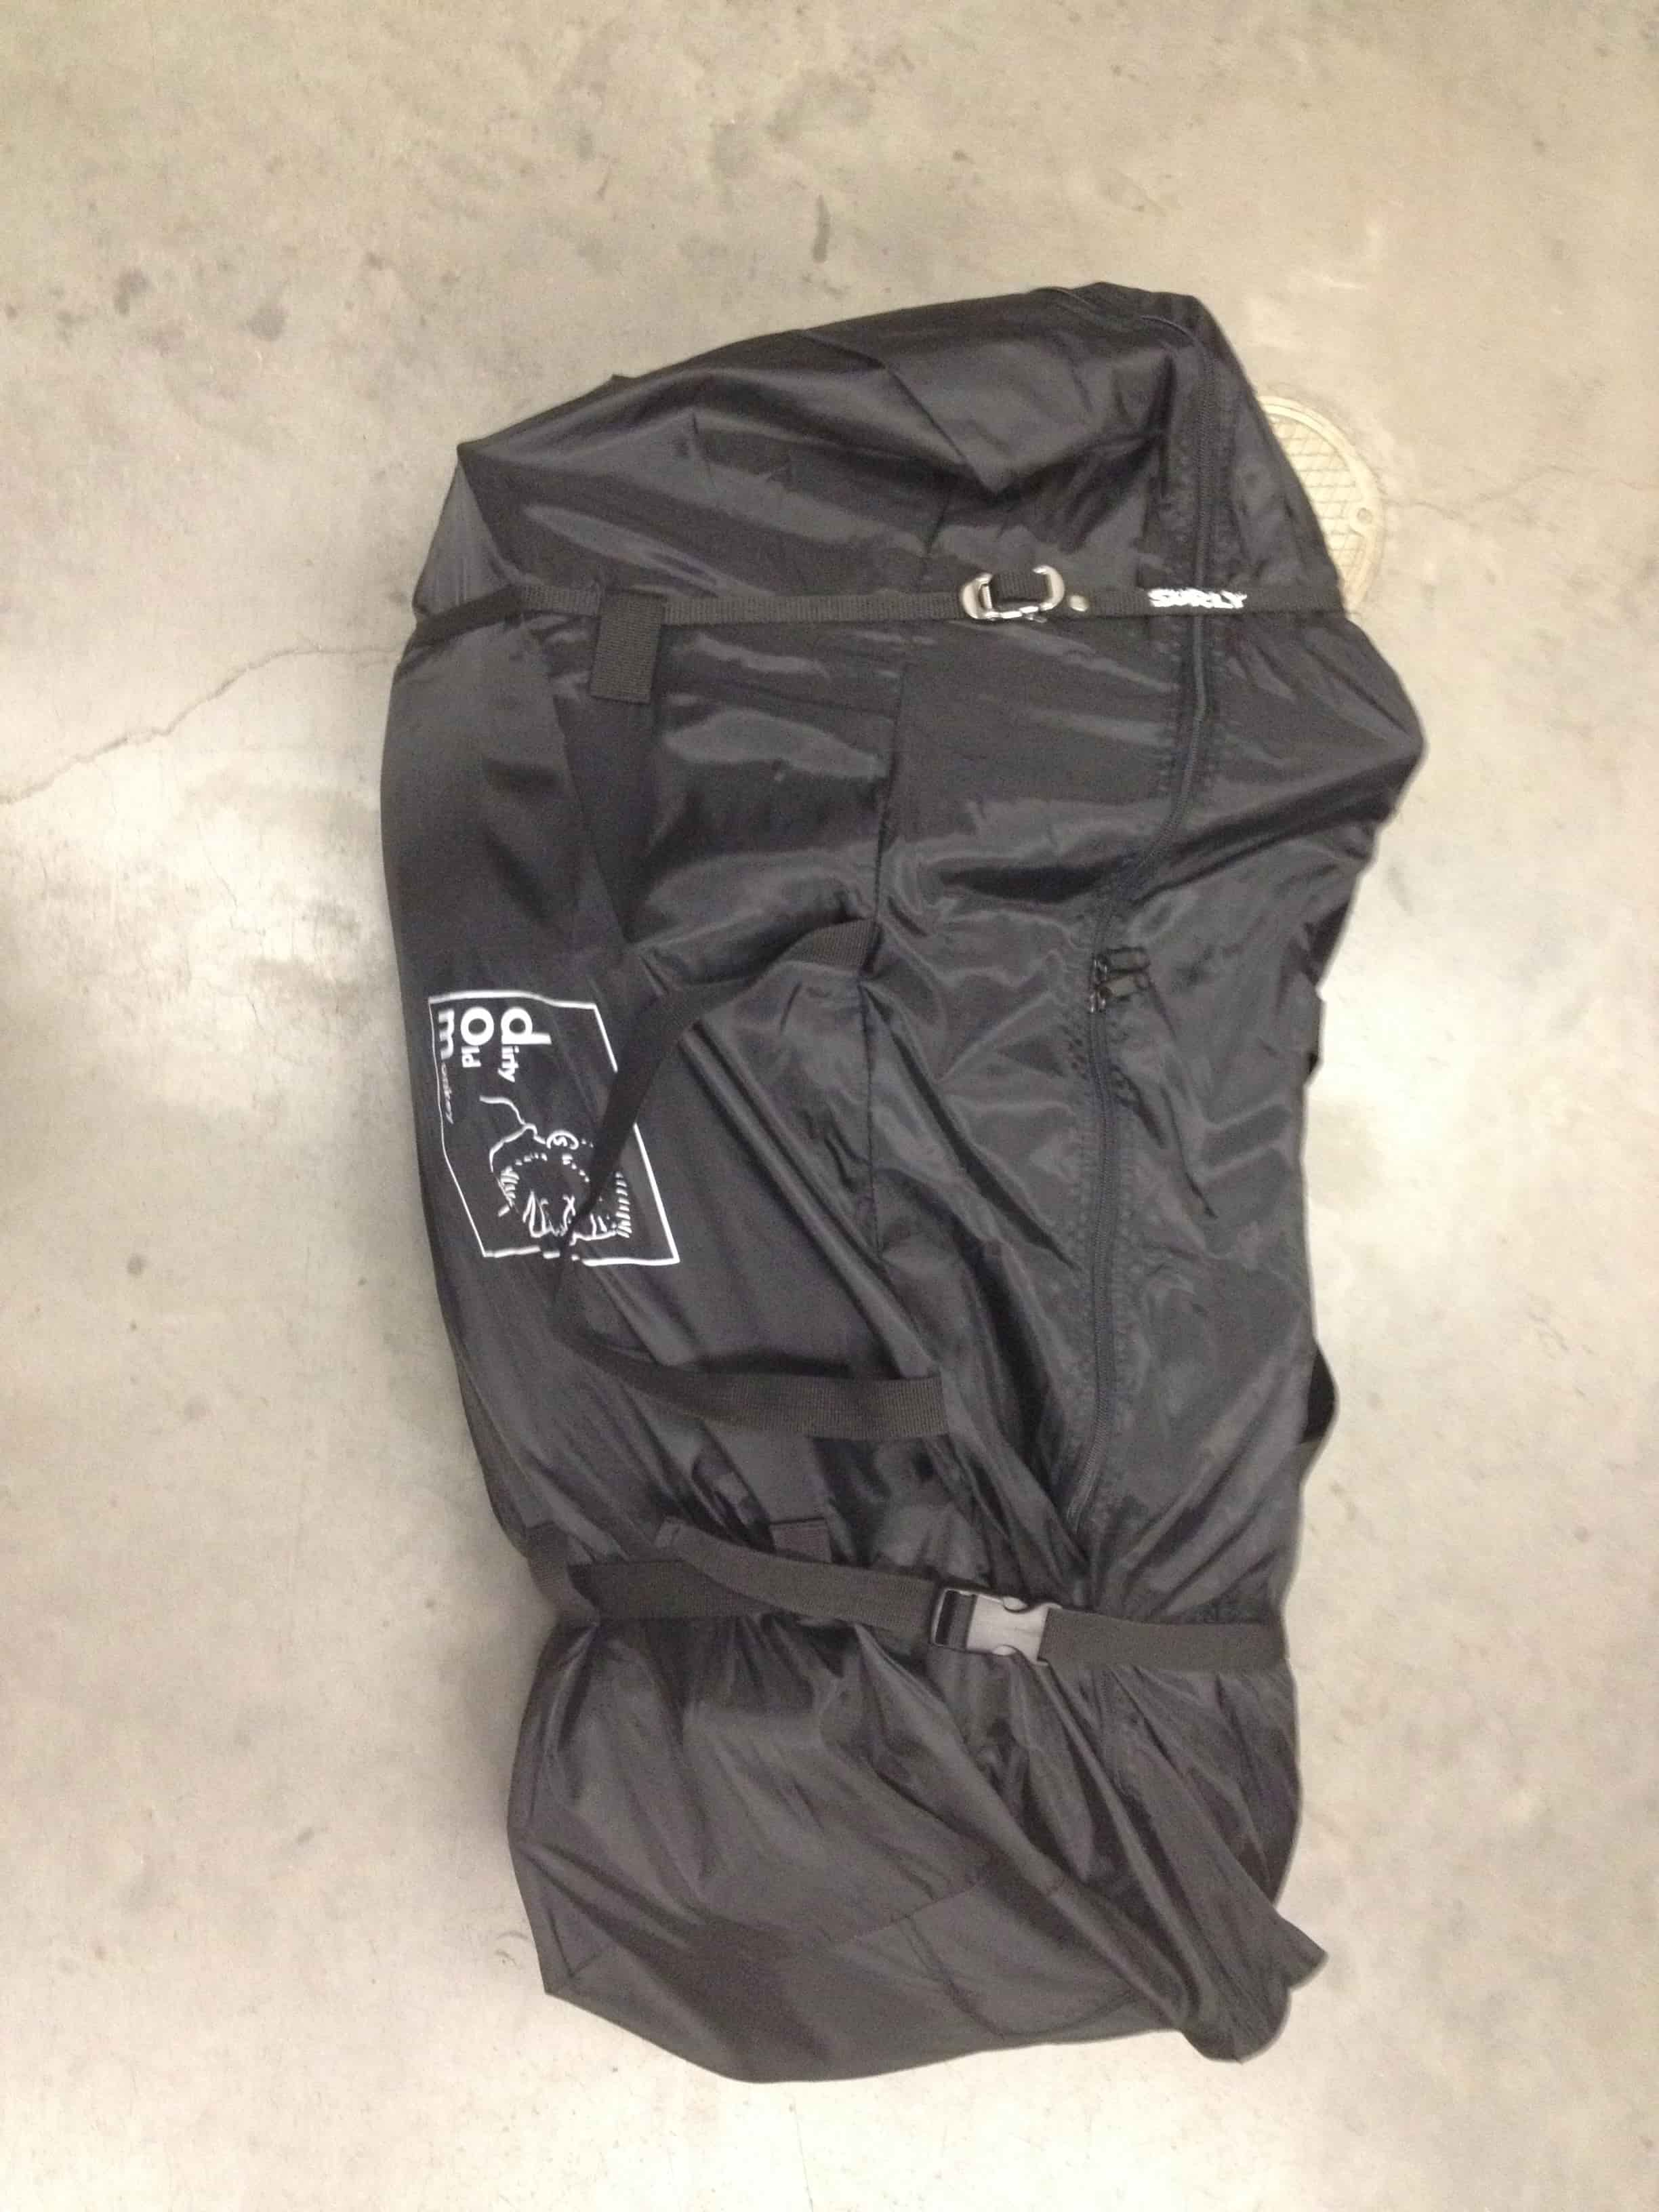 Downward view of a zipped up, black gear bag, with a Surly Junk Strap wrapped around it, on a cement floor